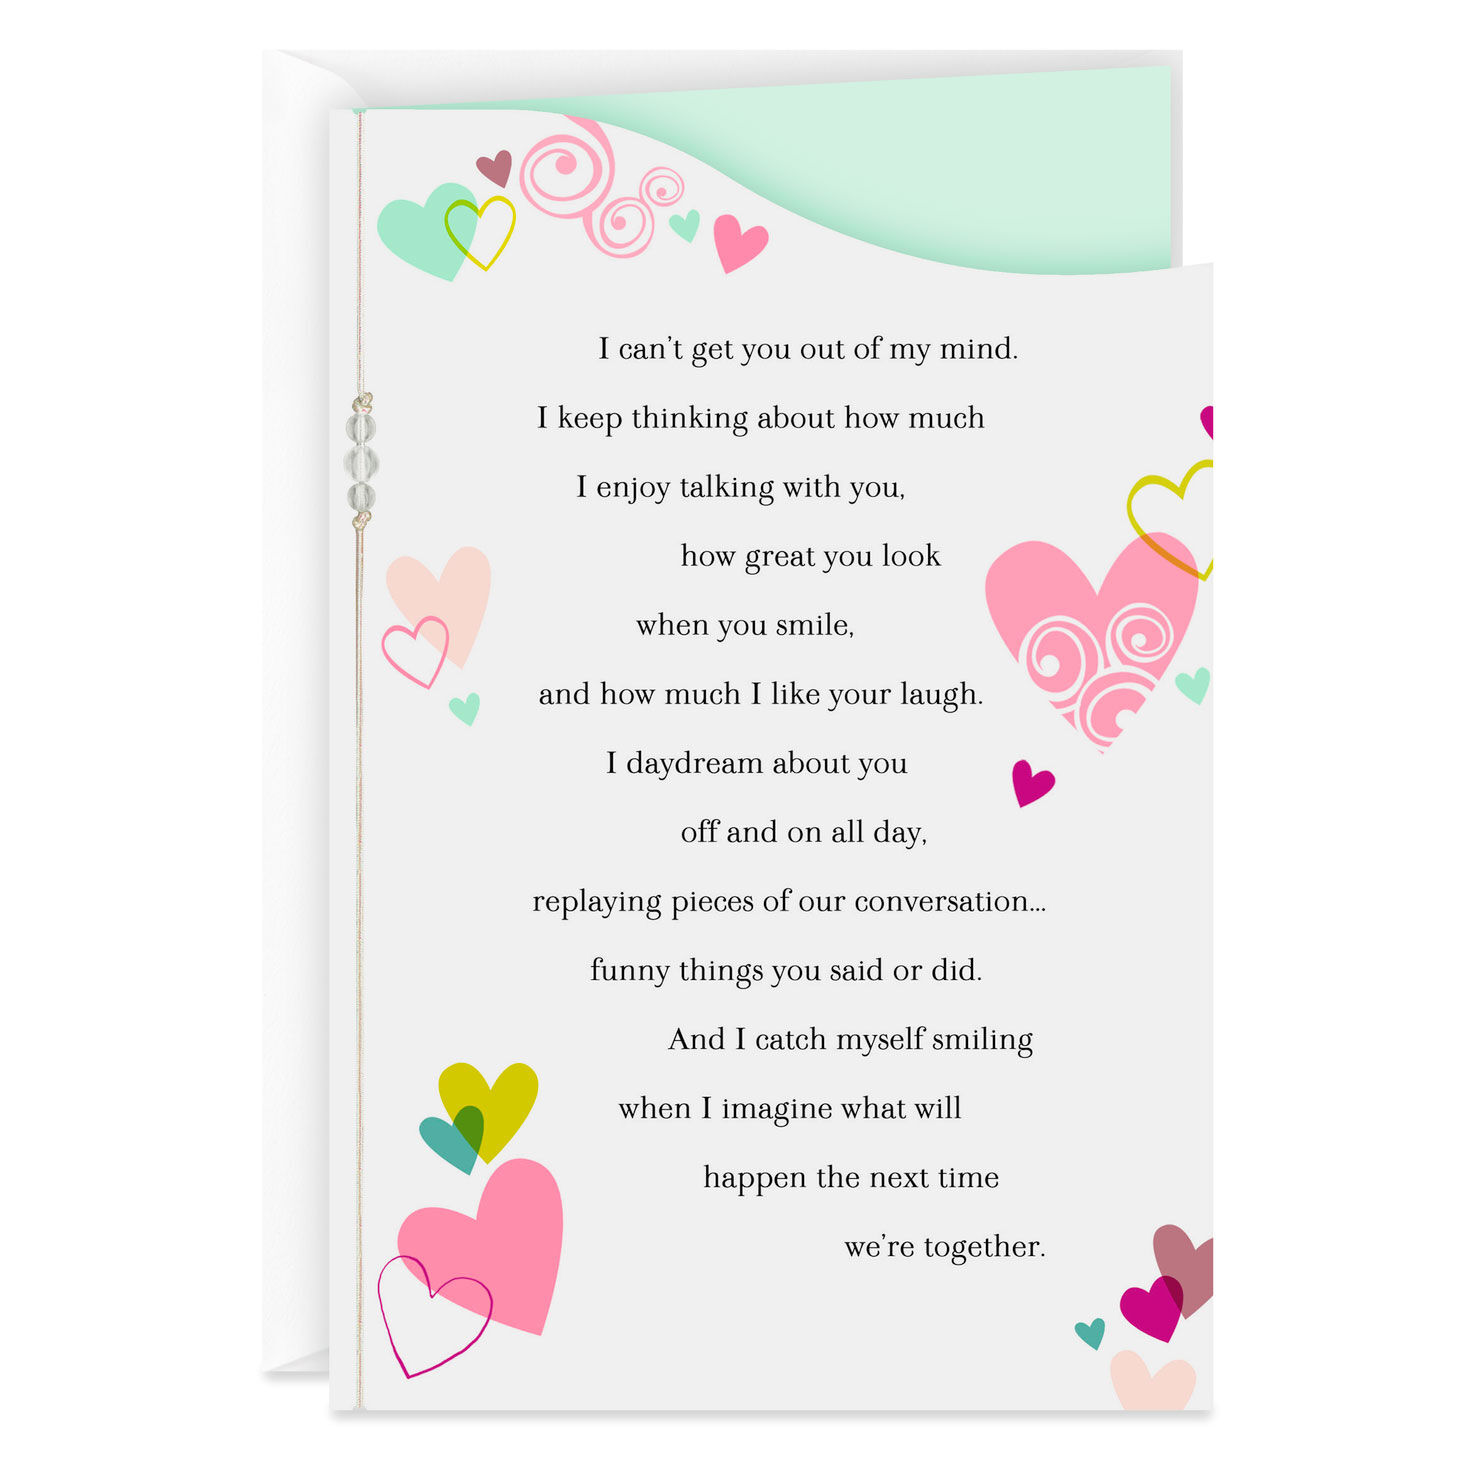 """Buy 100 /""""Pride and Joy©/"""" Fun Cards for $19.99 /& get 10 My 2 Kids Cards FREE!"""